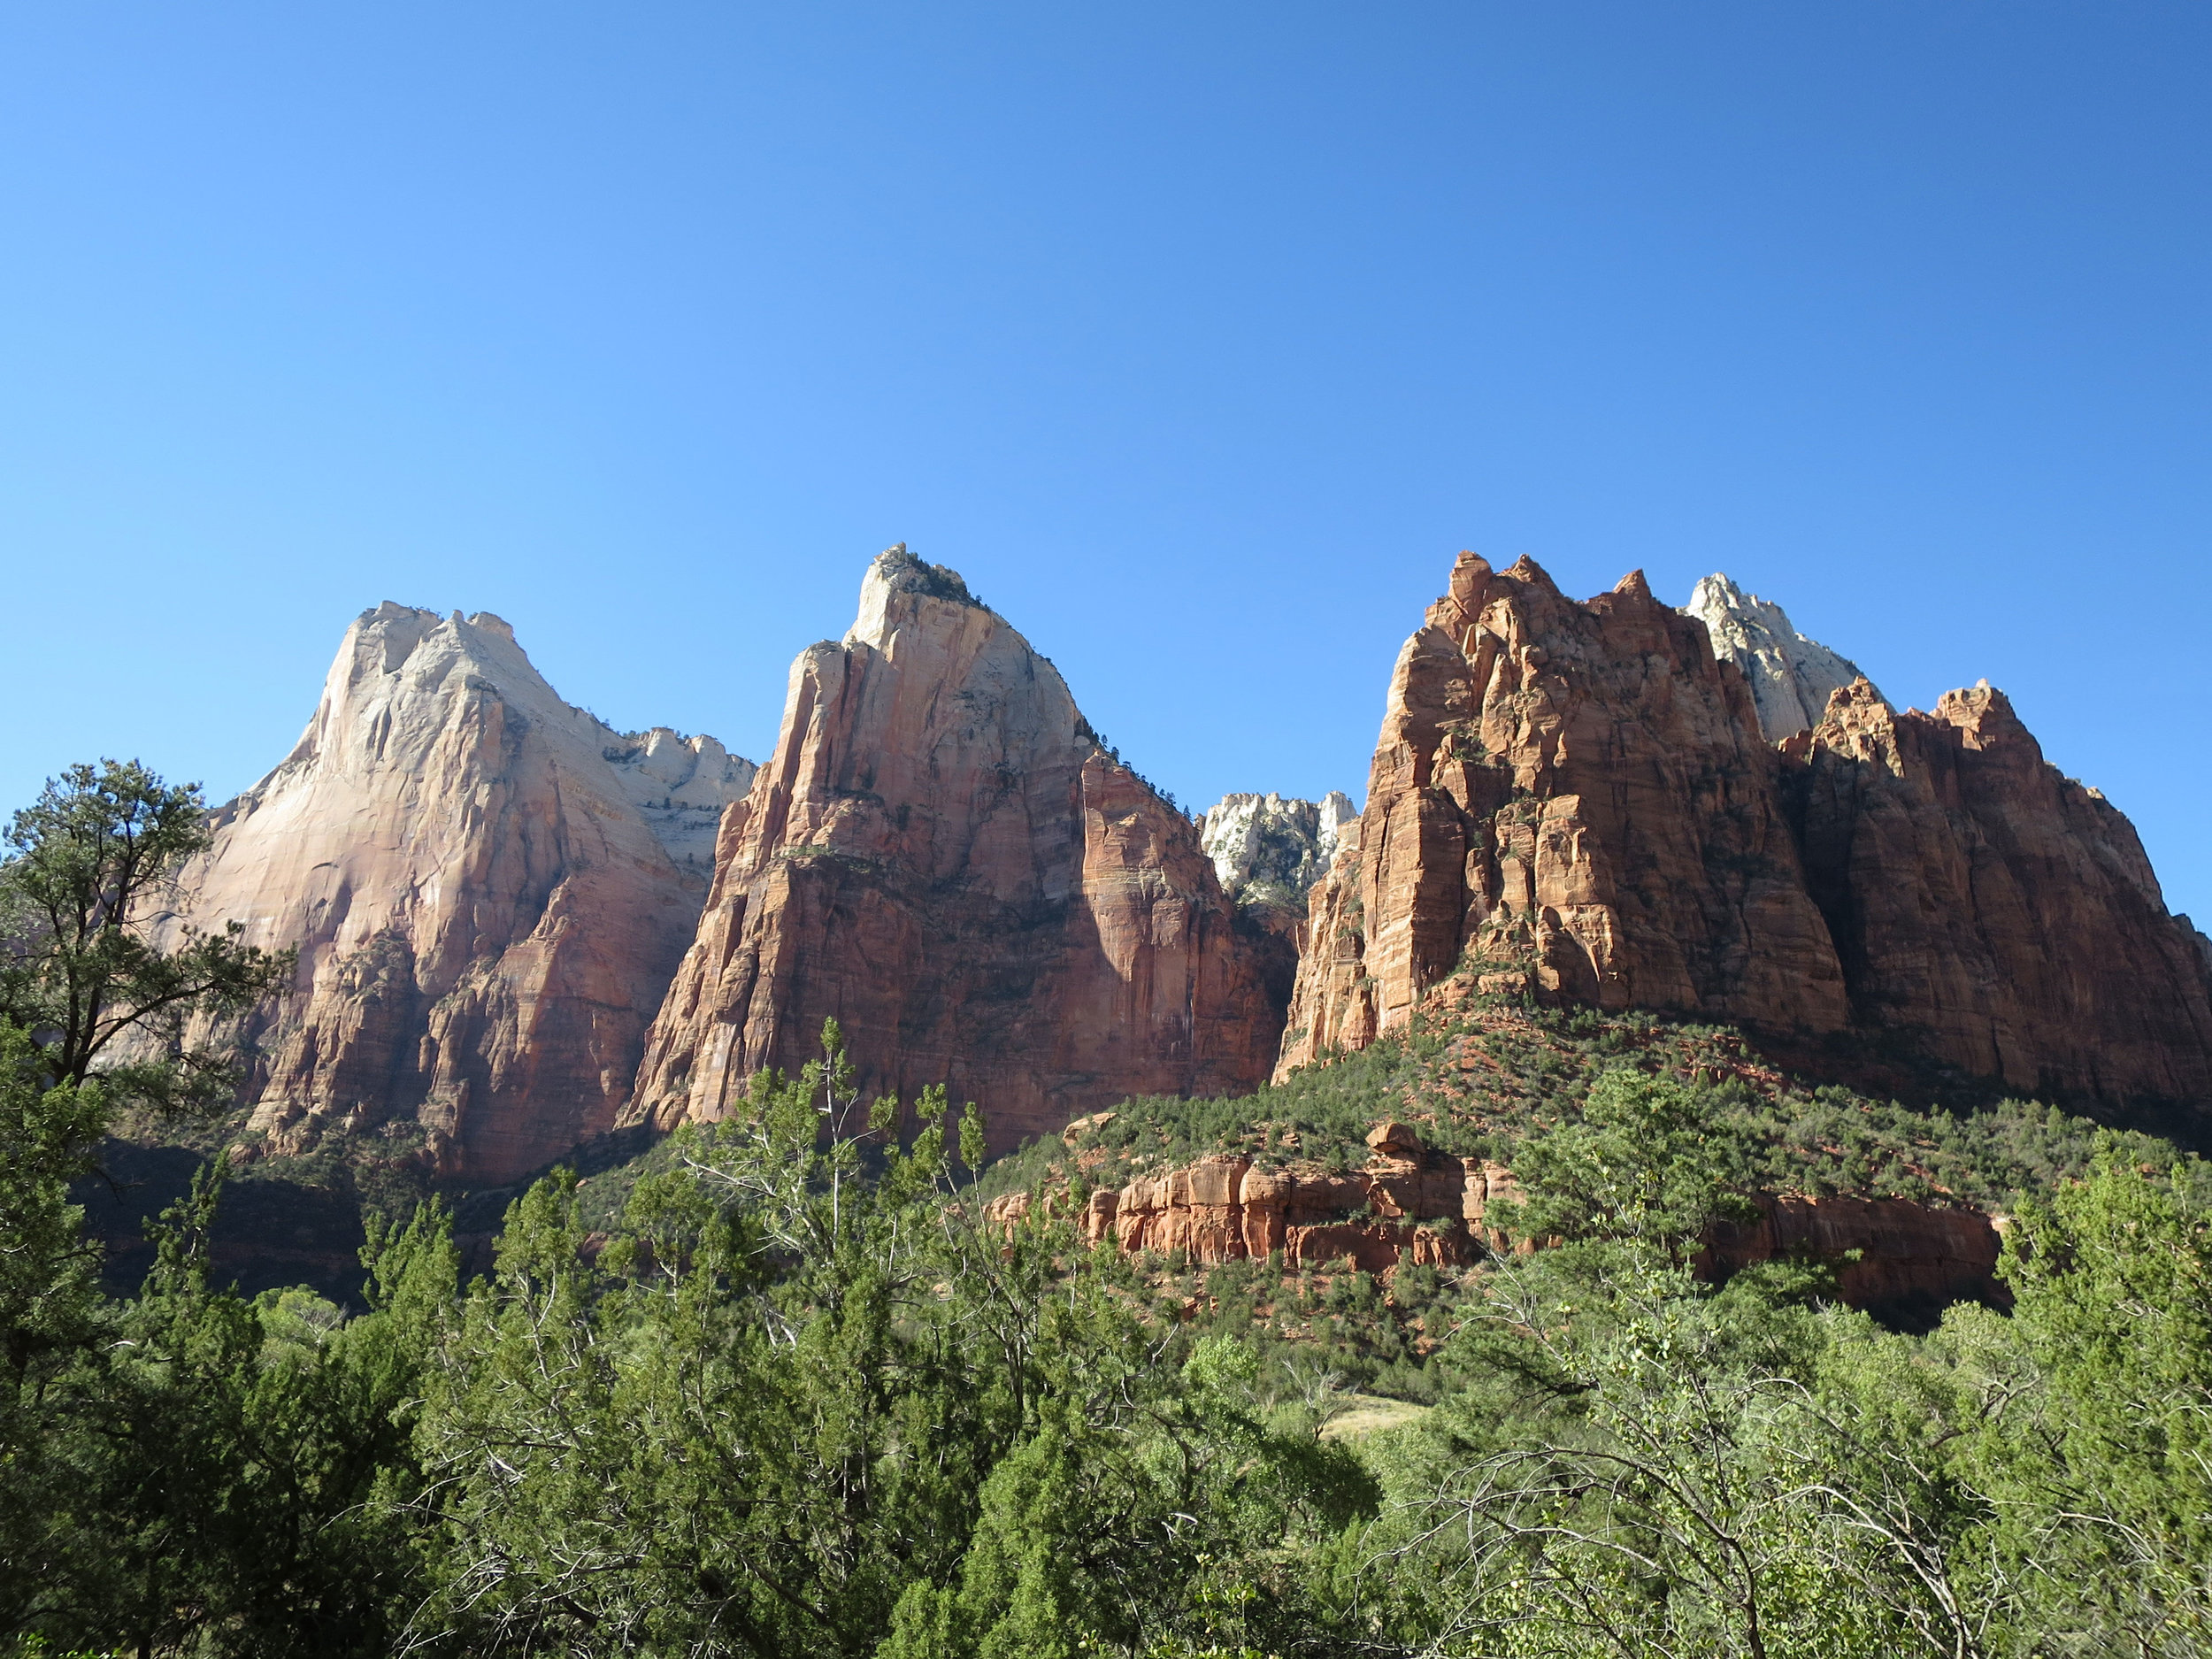 Utah_Zion_National_Park_01.jpg